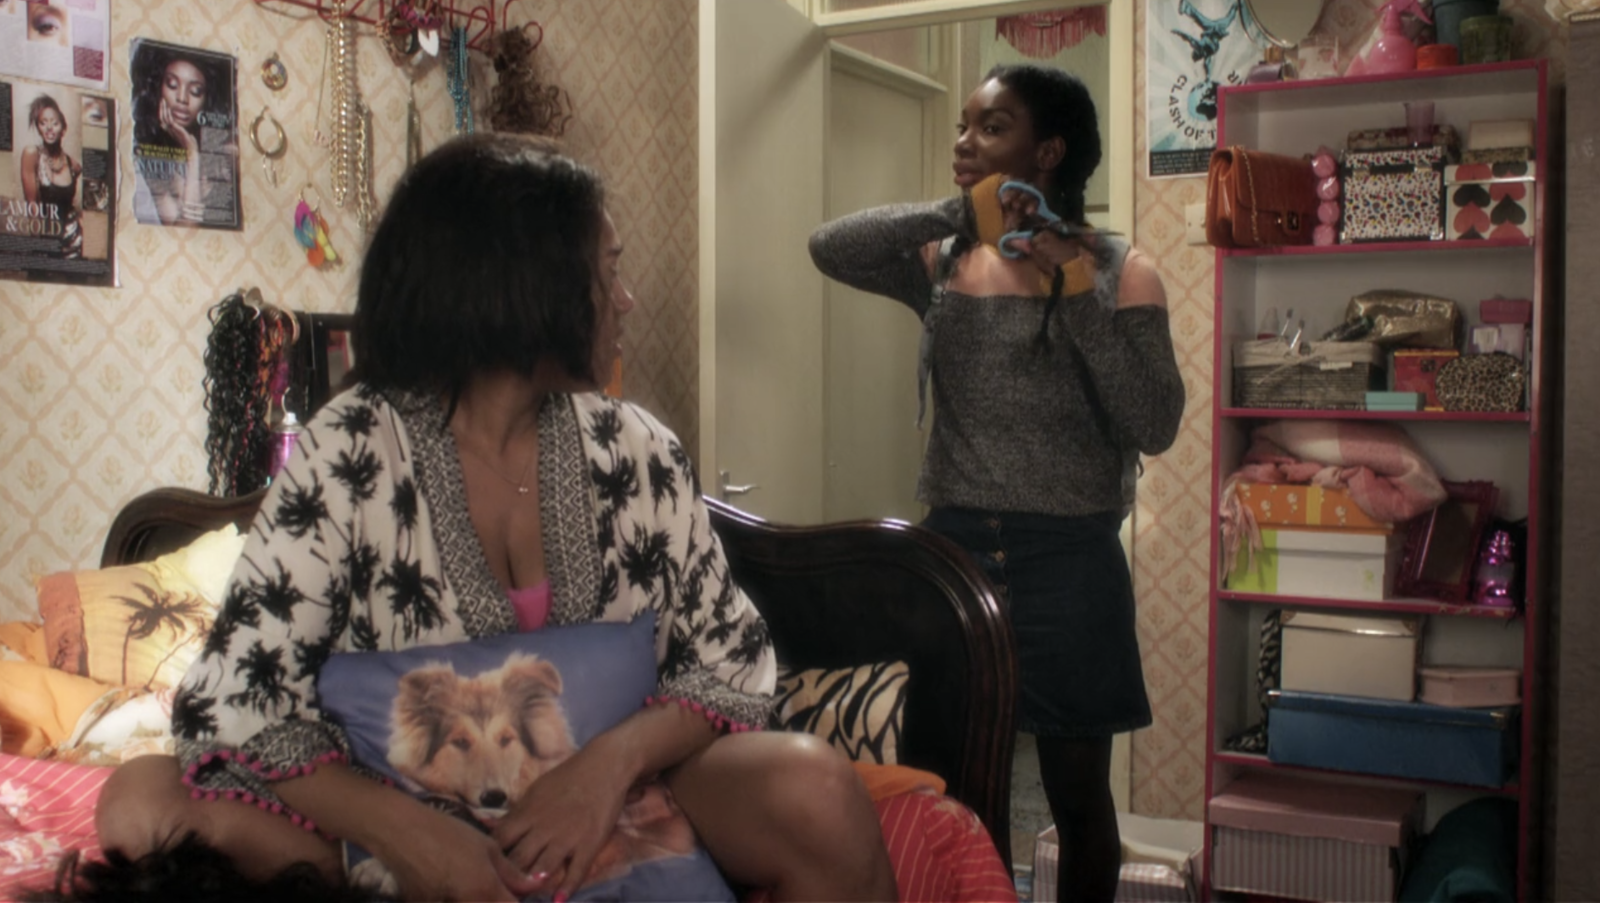 In  Chewing Gum , when Tracy cuts her hair in solidarity for Candice. -  There was just something so profound, yet simple, about Tracy cutting her hair to show Candice how her hair meant nothing in comparison to their community, love, and friendship on  Chewing Gum .